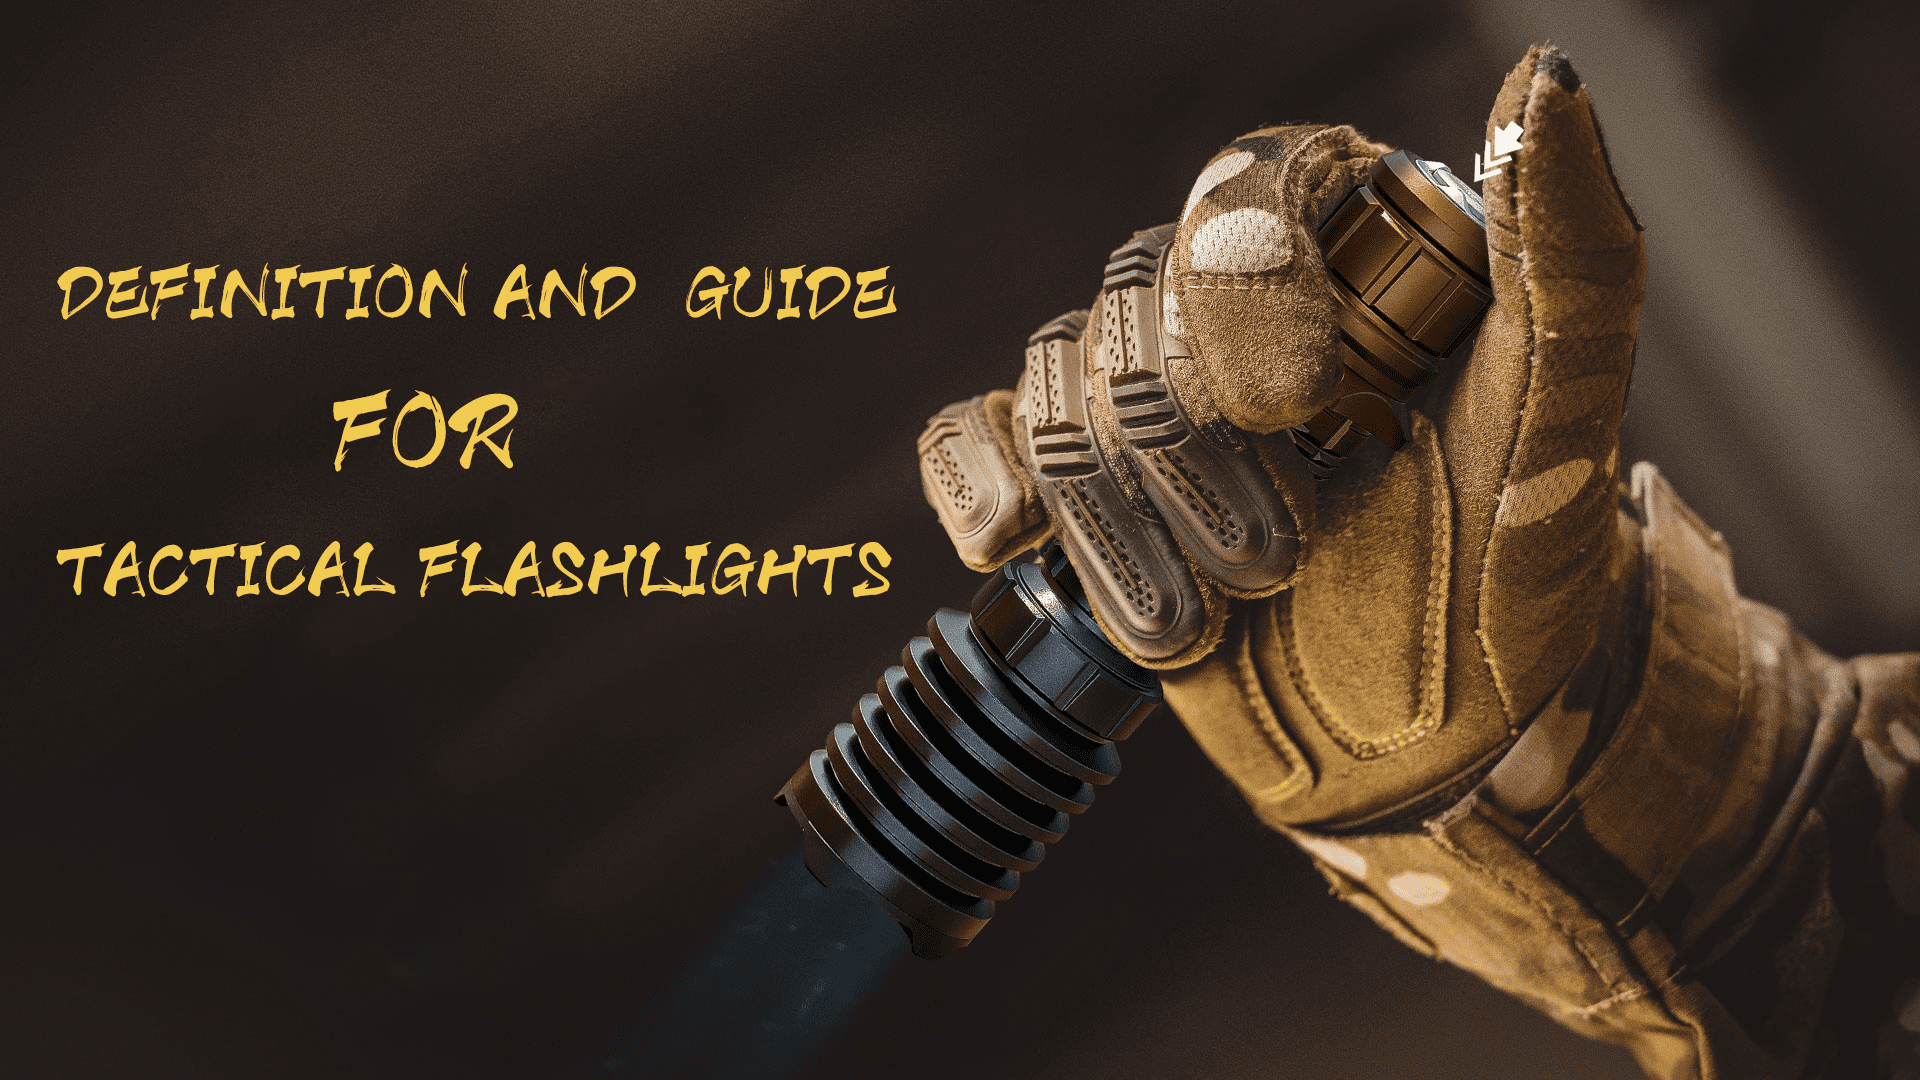 Definition and  Guide for Tactical Flashlights